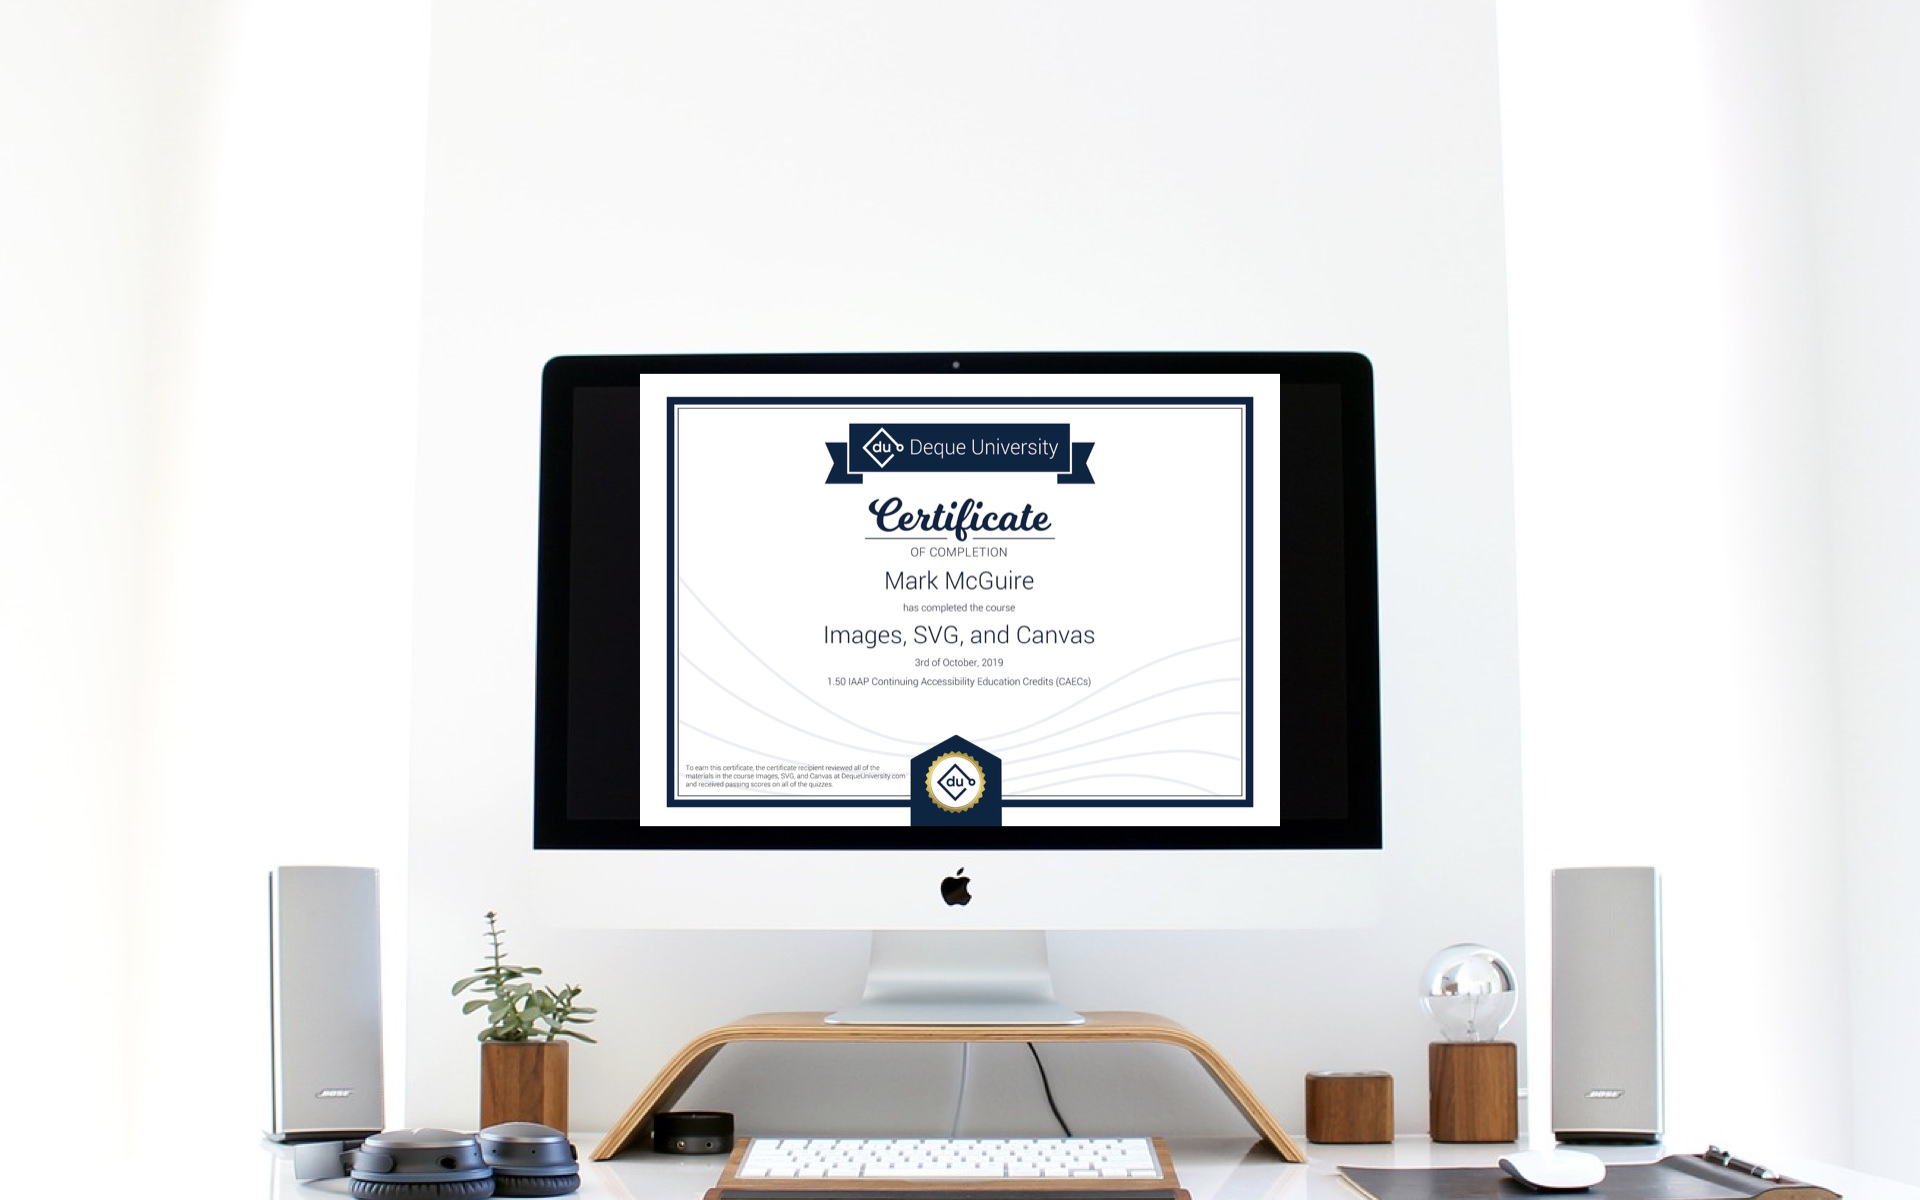 iMac with certificate displayed on screen.